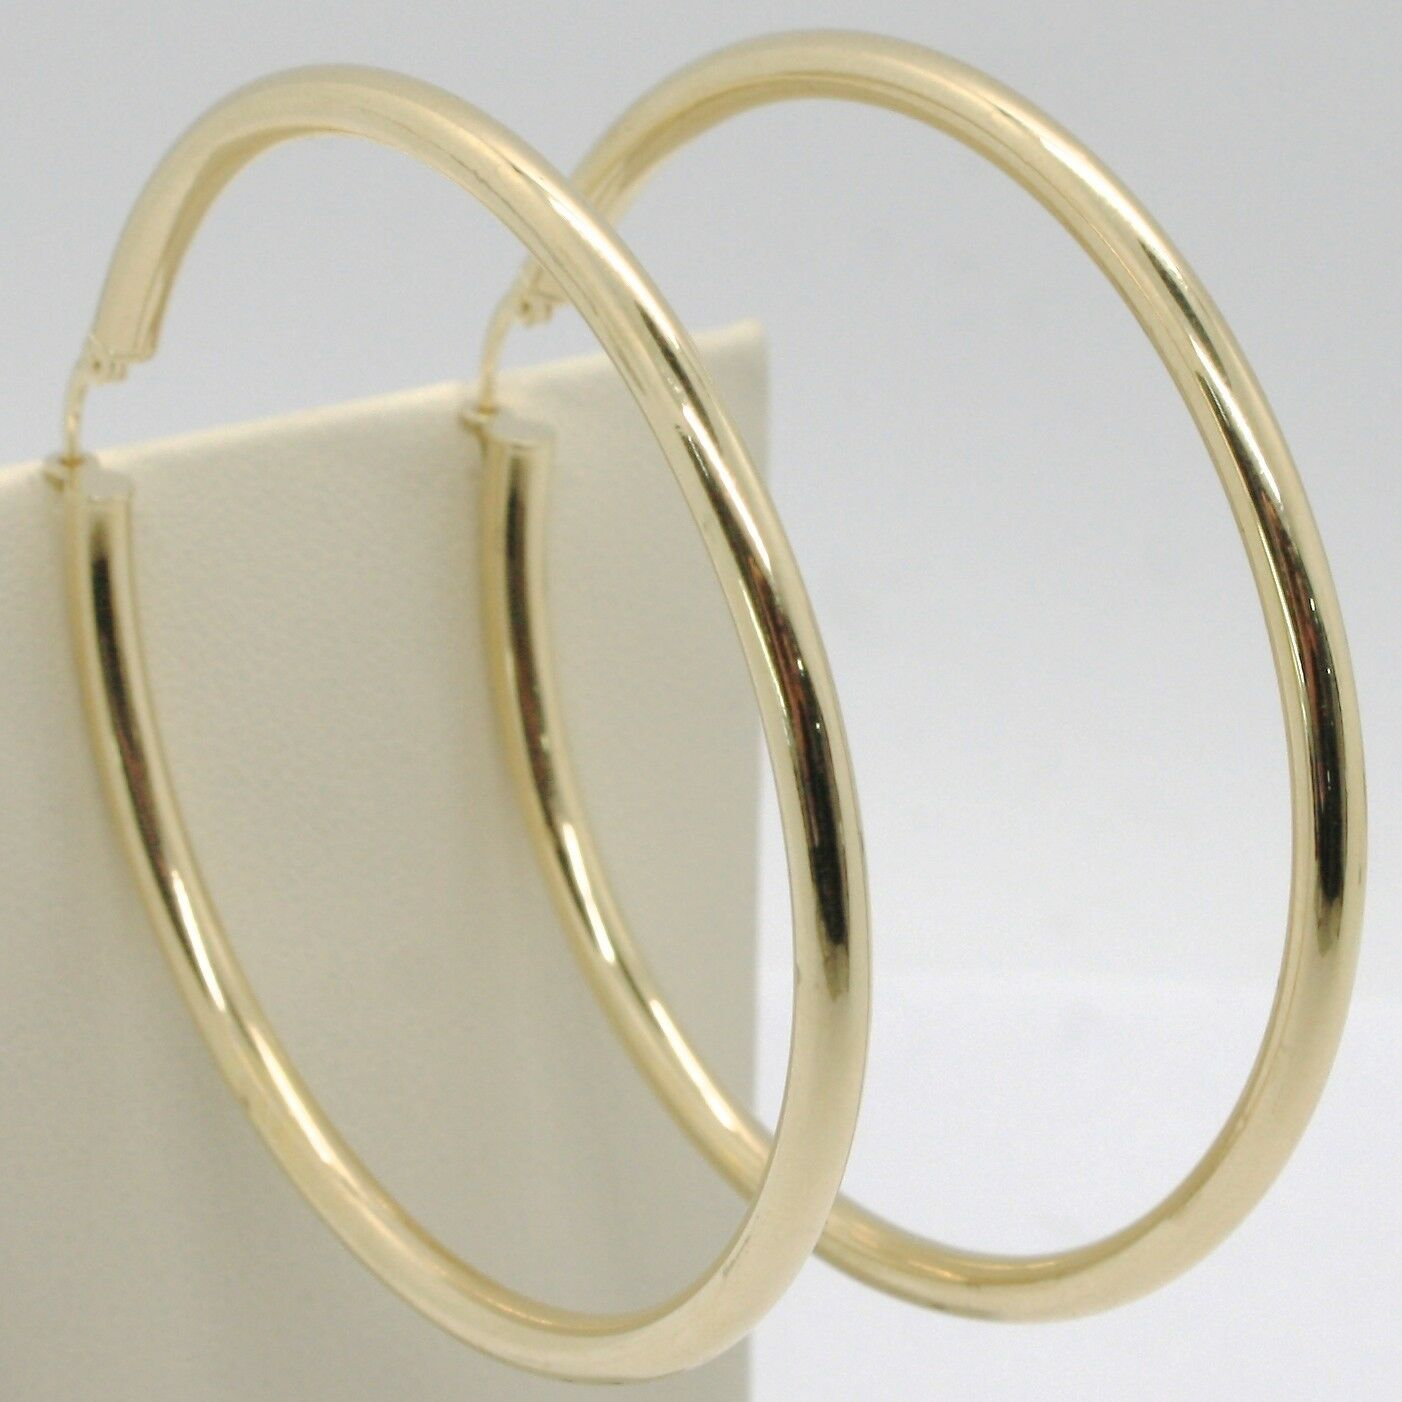 18K YELLOW GOLD ROUND CIRCLE EARRINGS DIAMETER 70 MM, WIDTH 3 MM, MADE IN ITALY